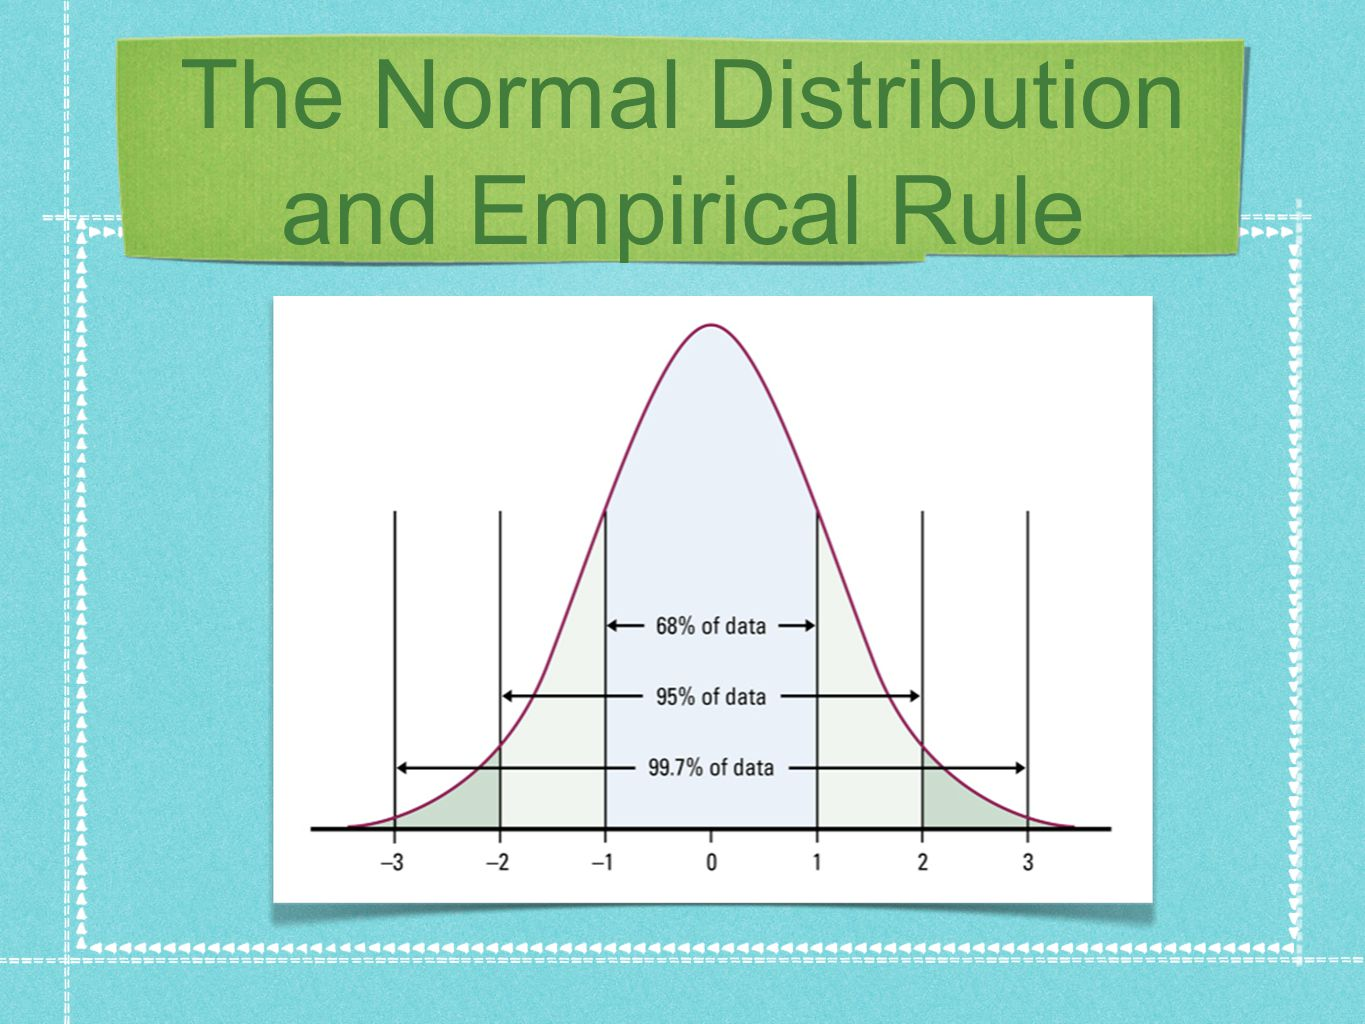 The Normal Distribution and Empirical Rule